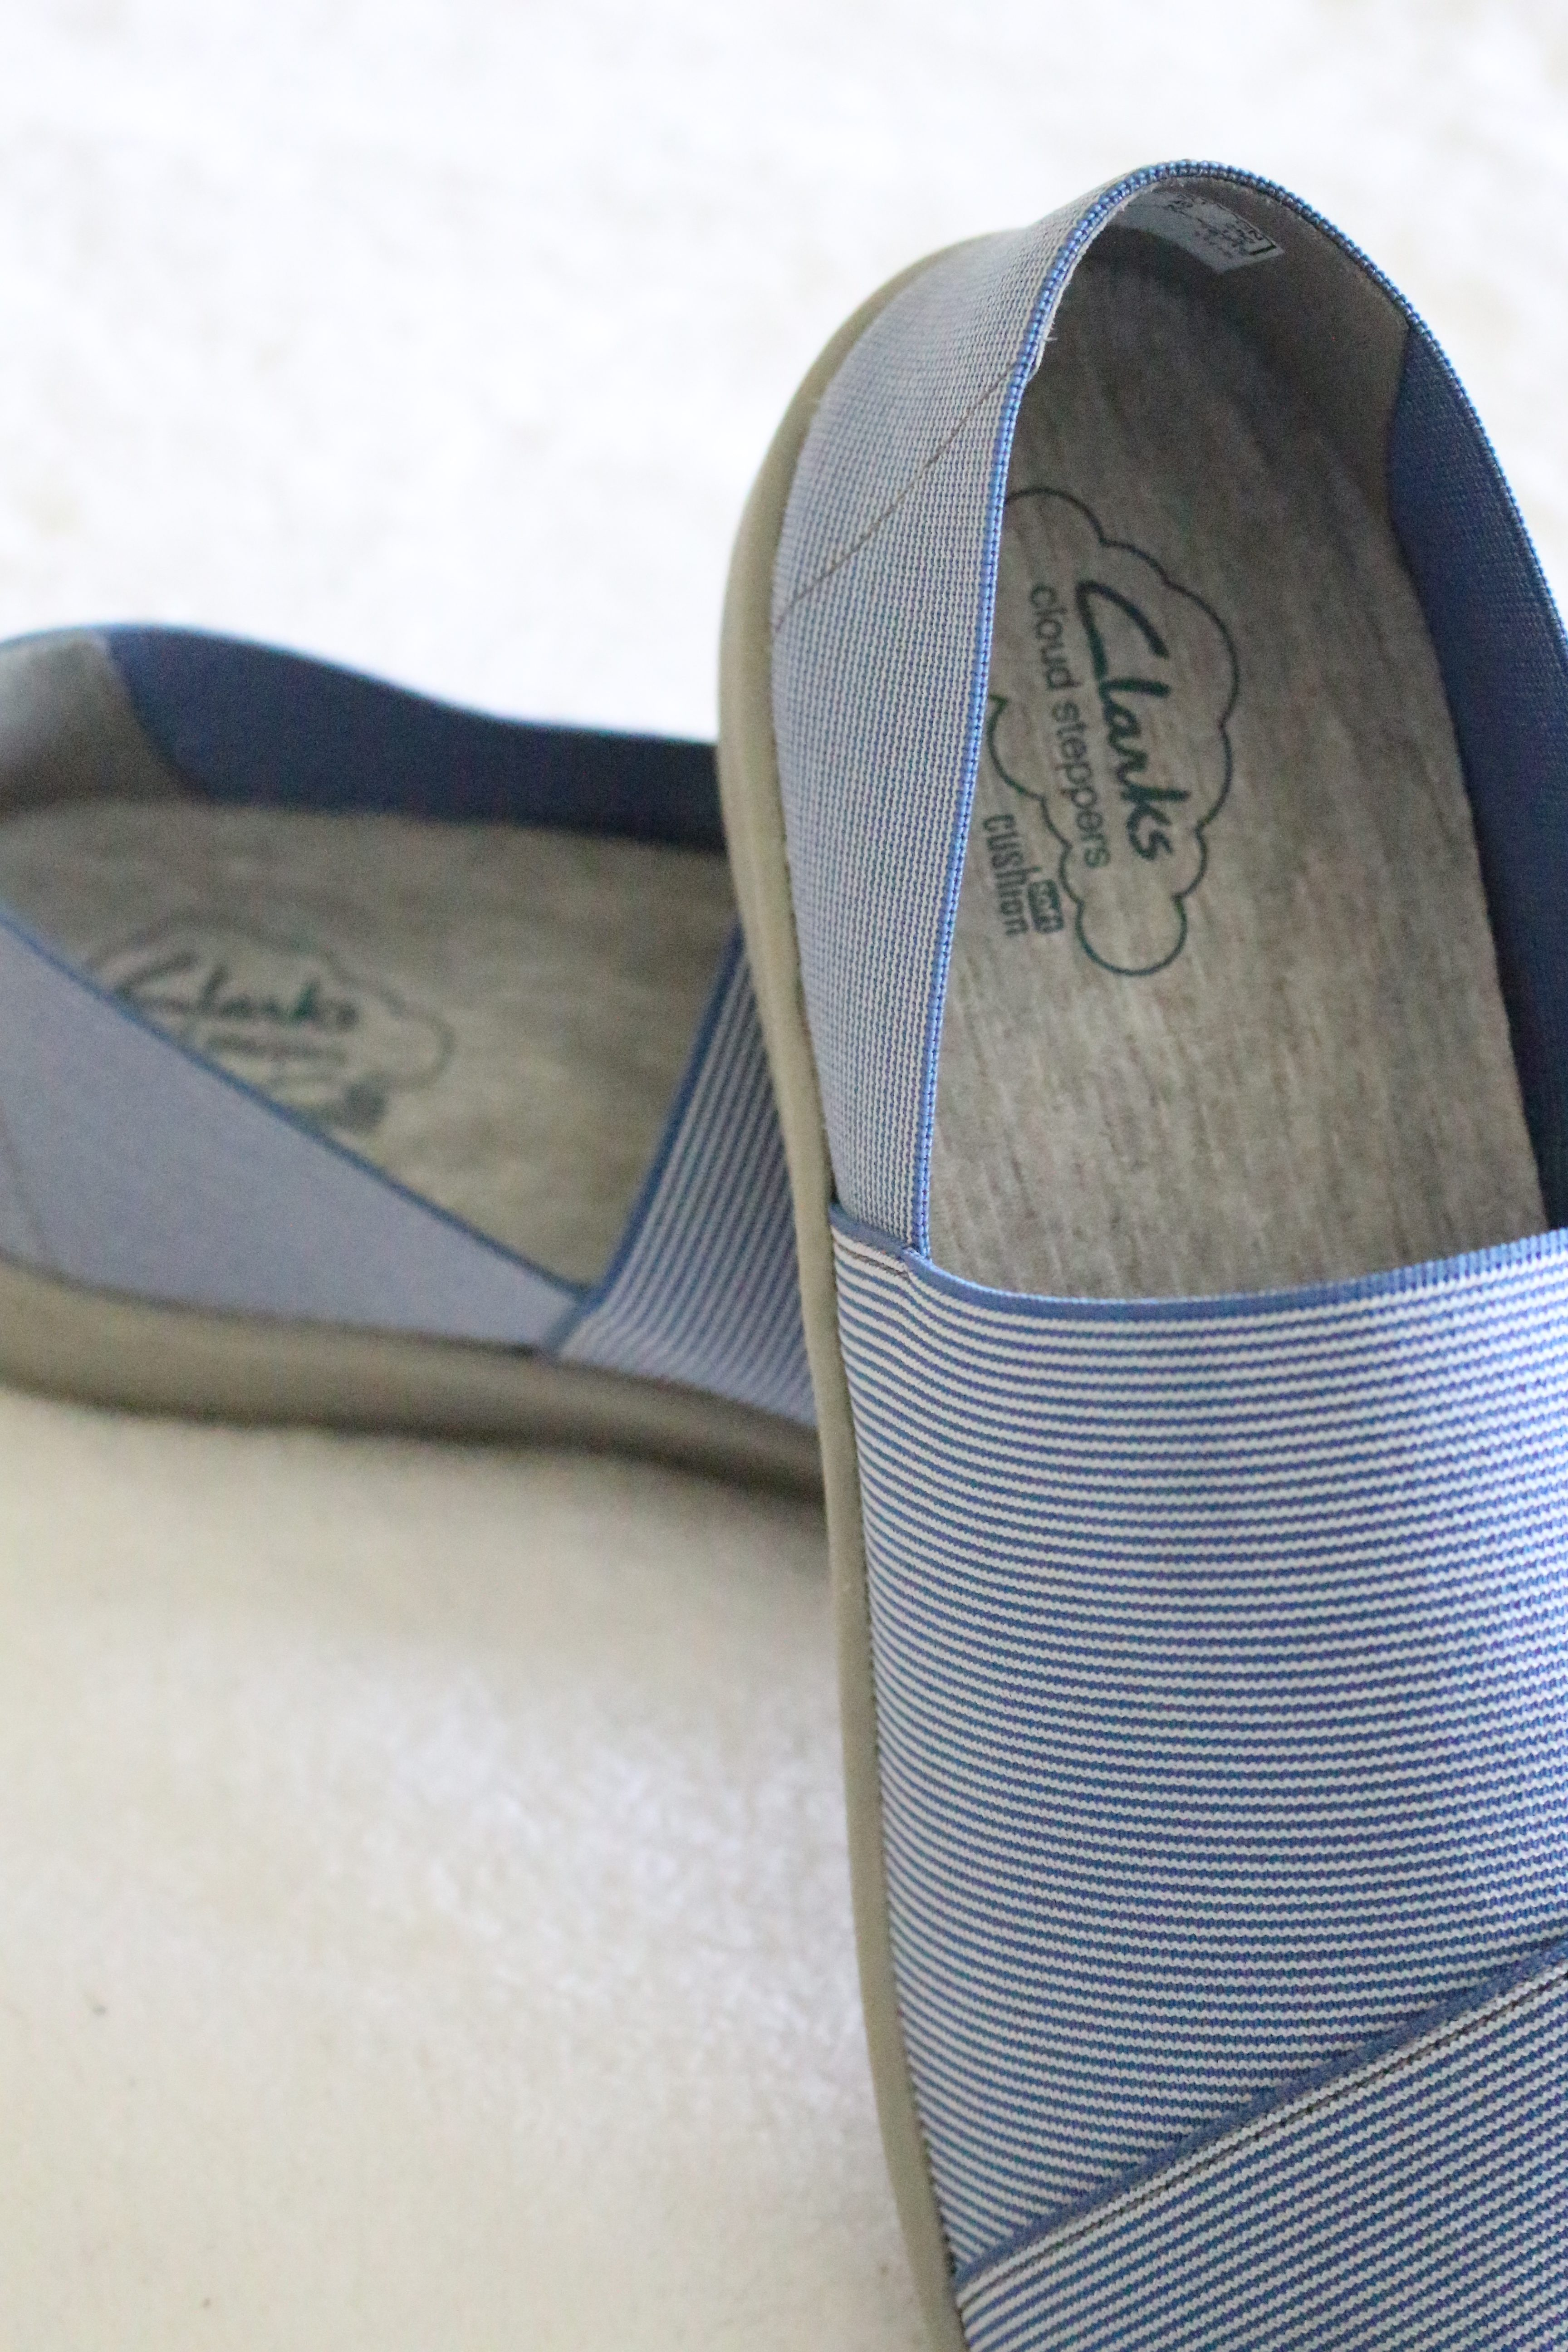 Clarks cloud stepper for versatile shoes with comfort by www.whitecottagehomeandliving.com